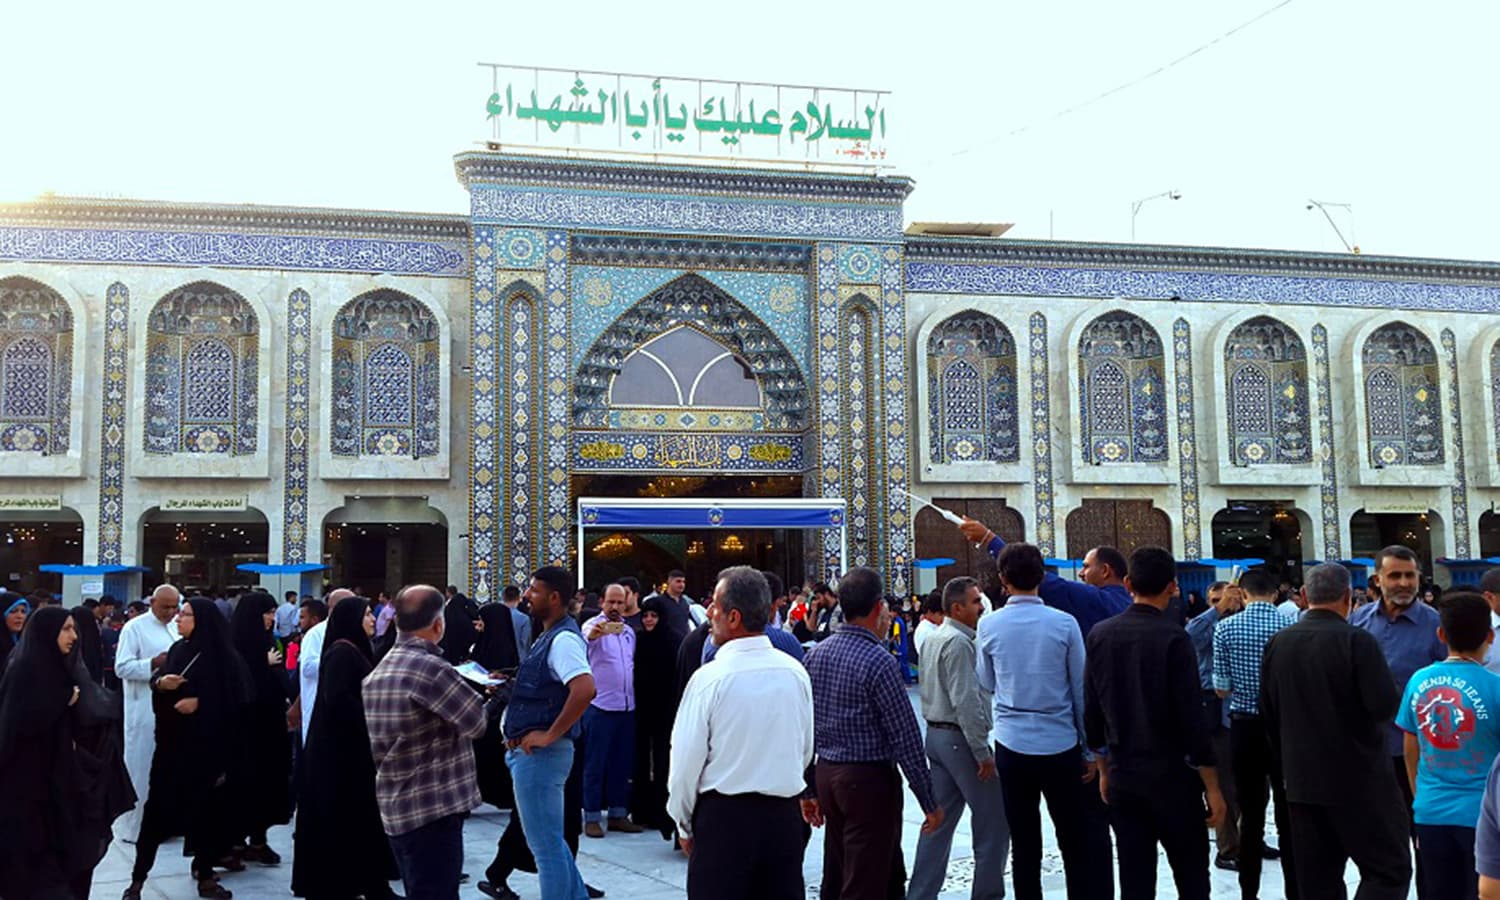 "It is said that Imam Hussain purchased the land of Karbala from the tribe of Bani Asad who lived there and gifted it back to them. He then addressed the men, requesting that: ""On the tenth of this month you will see our dead bodies lying on this plain with our heads severed and taken away. Please bury us, and when our devotees come to visit our graves, treat them with honour and point out to them the places of our burial."""